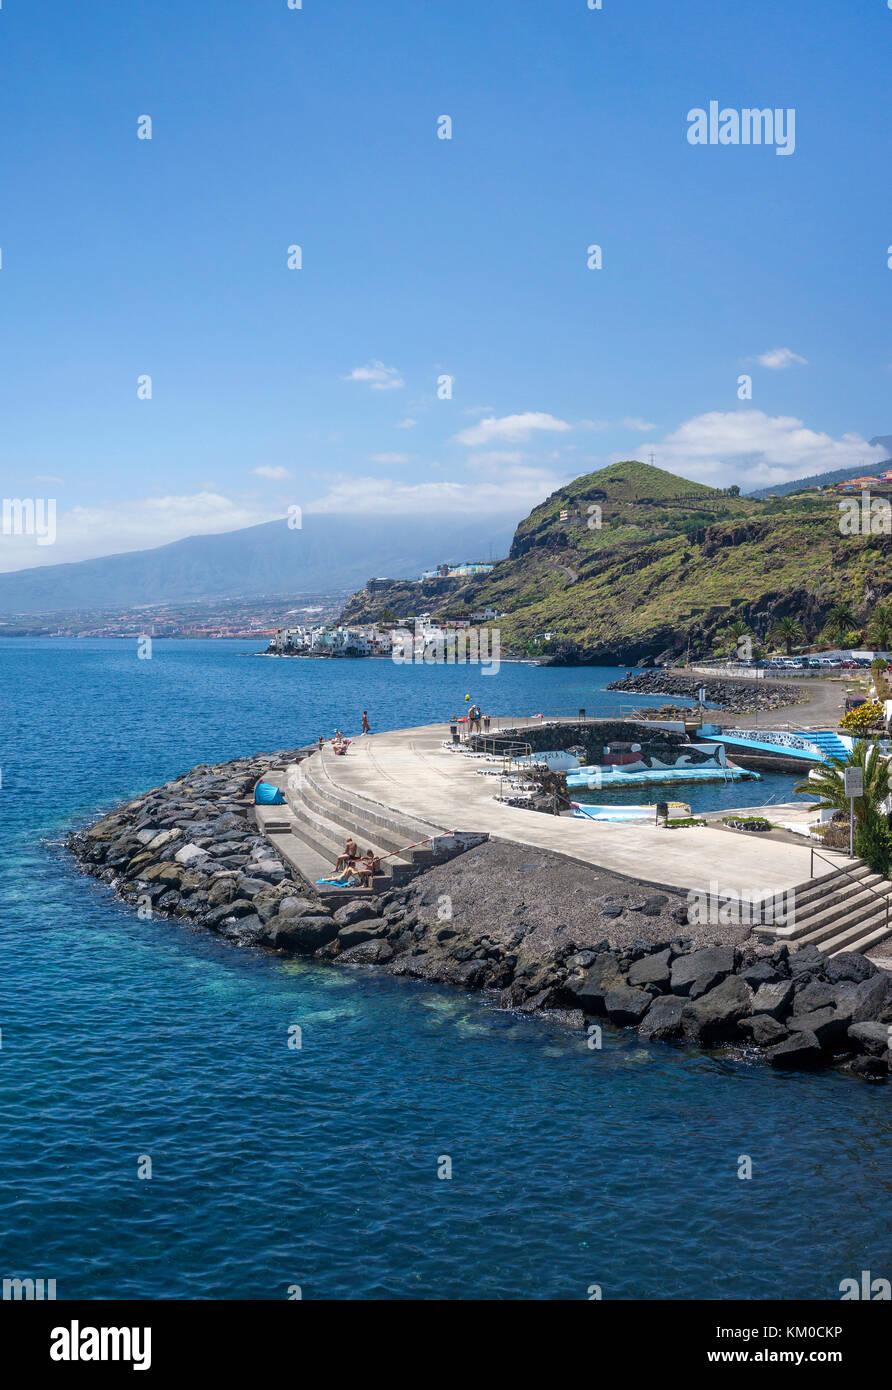 Natural seawater pool at apartment complex, Tabaiba, north-east of Tenerife island, Canary islands, Spain - Stock Image